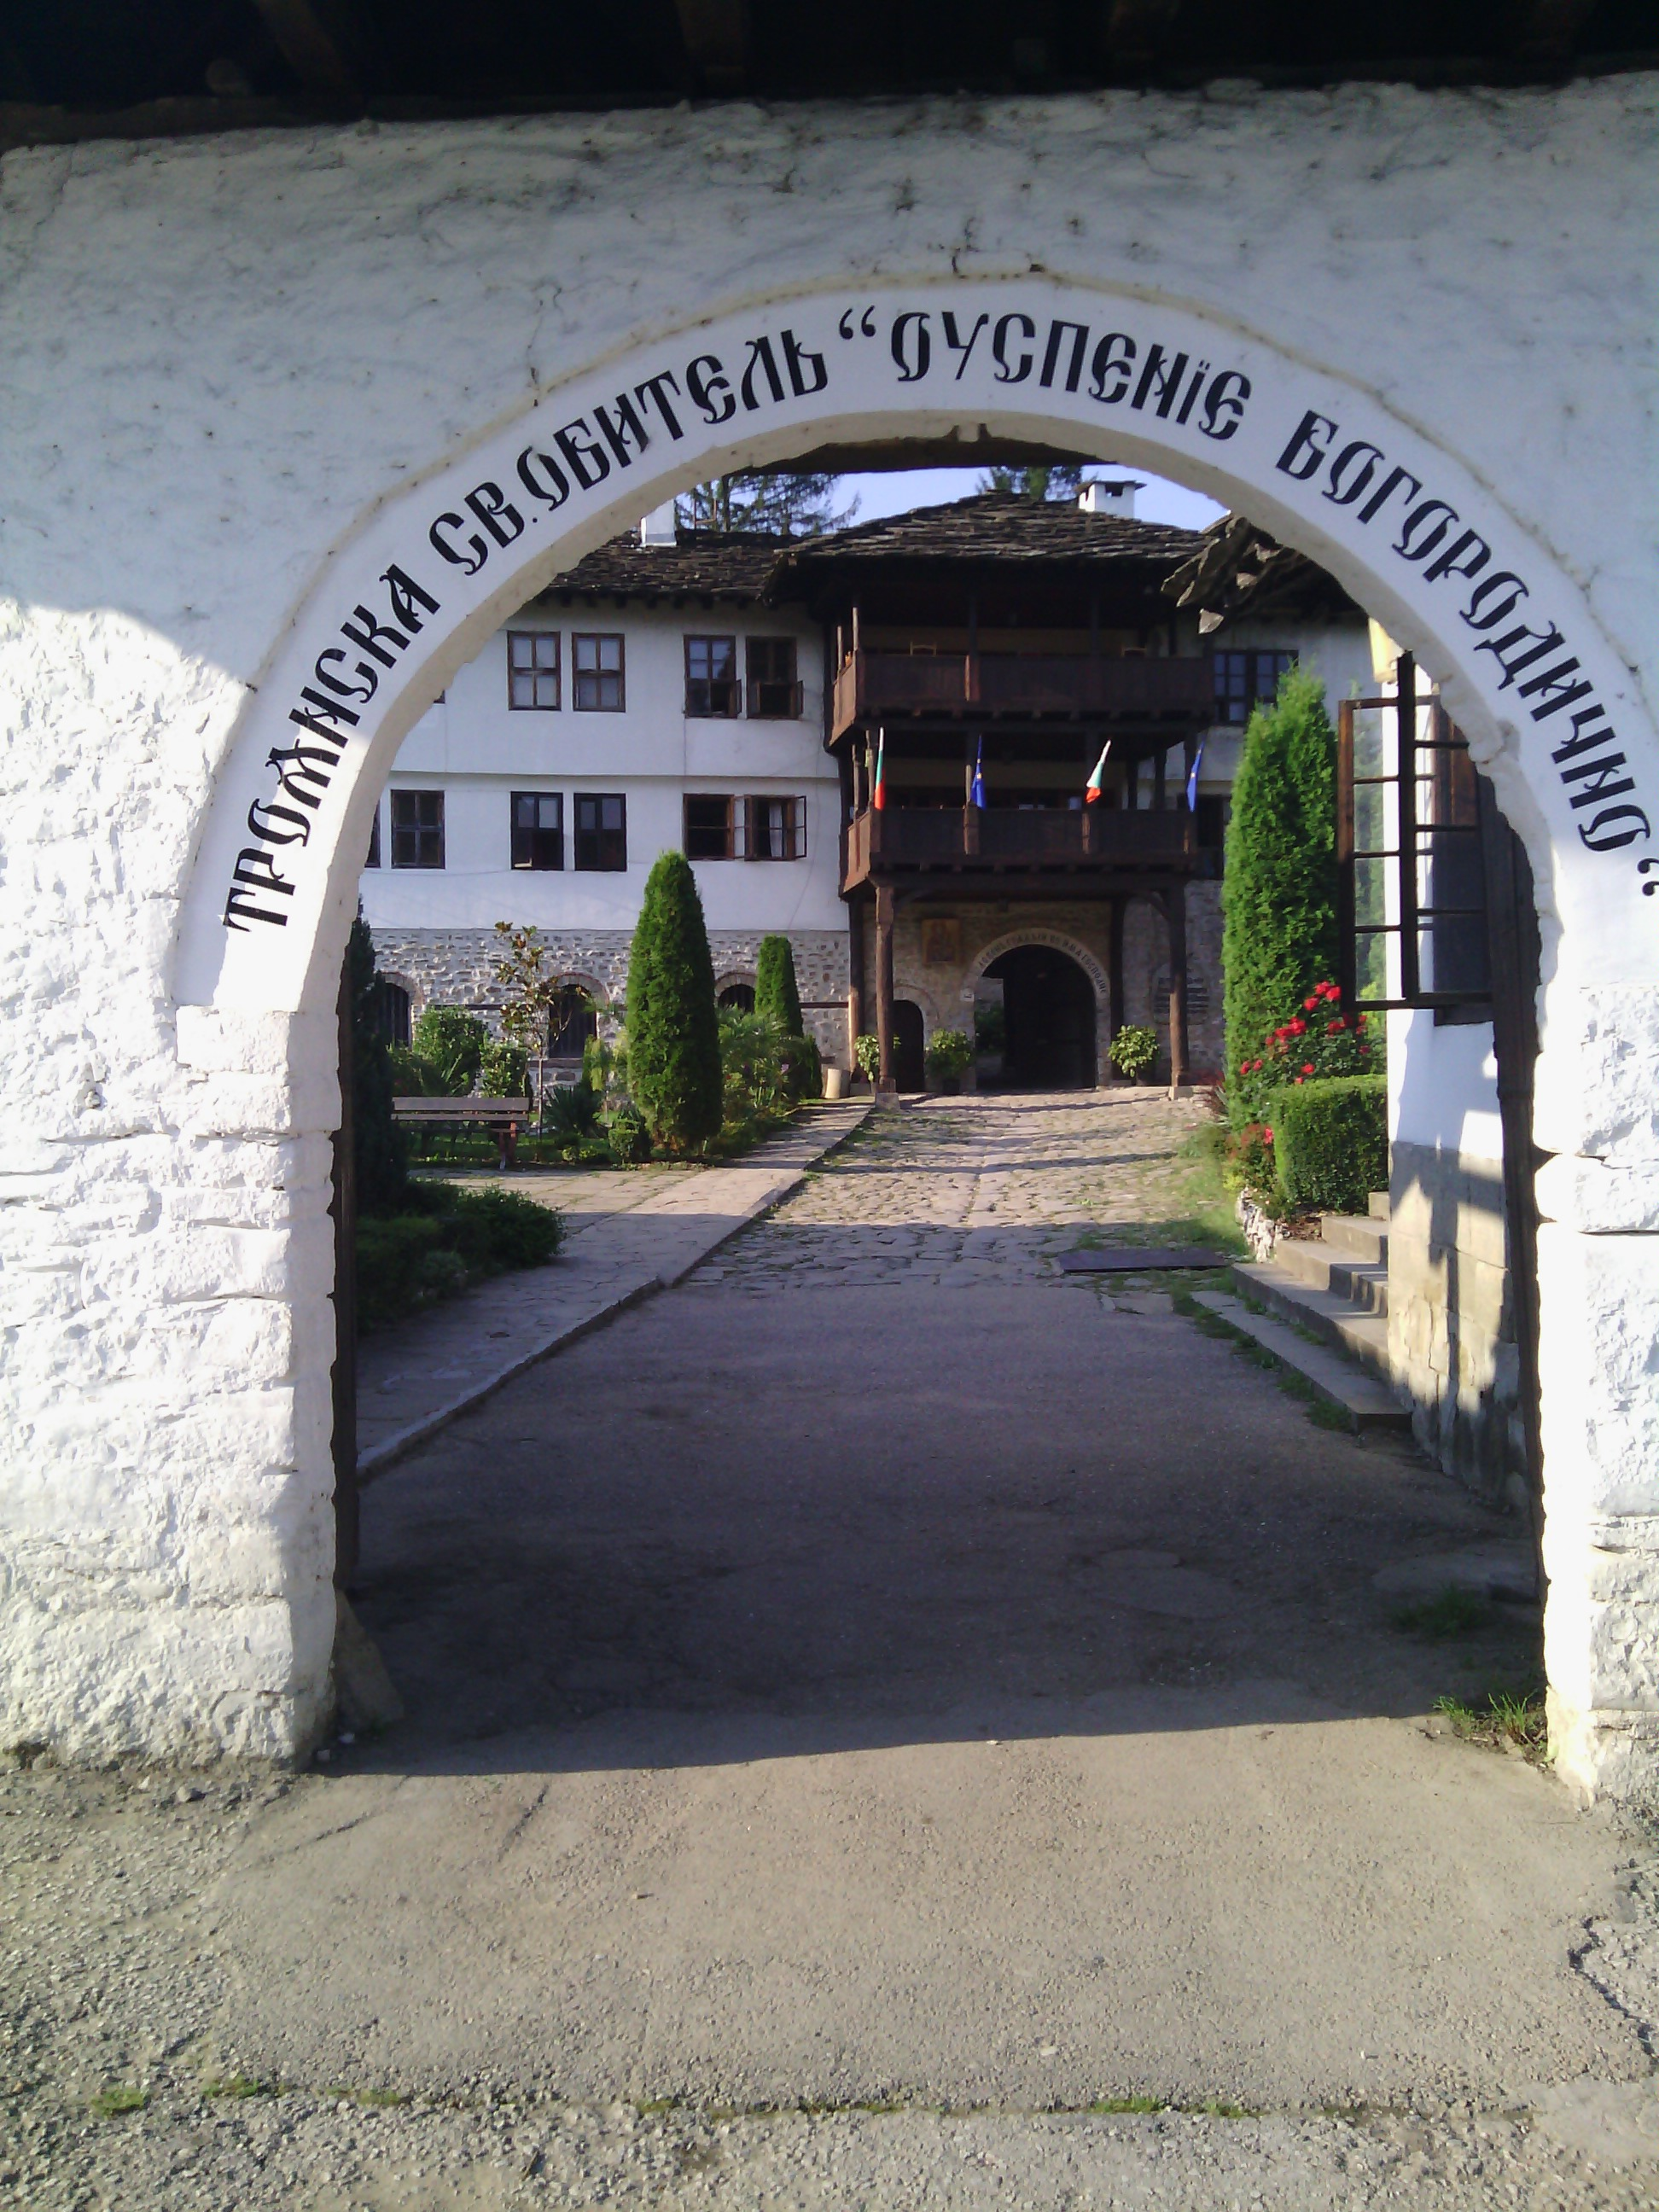 Entrance door of The Troyan Monastery - Troianska sveta obitel uspenie Bogorodichno